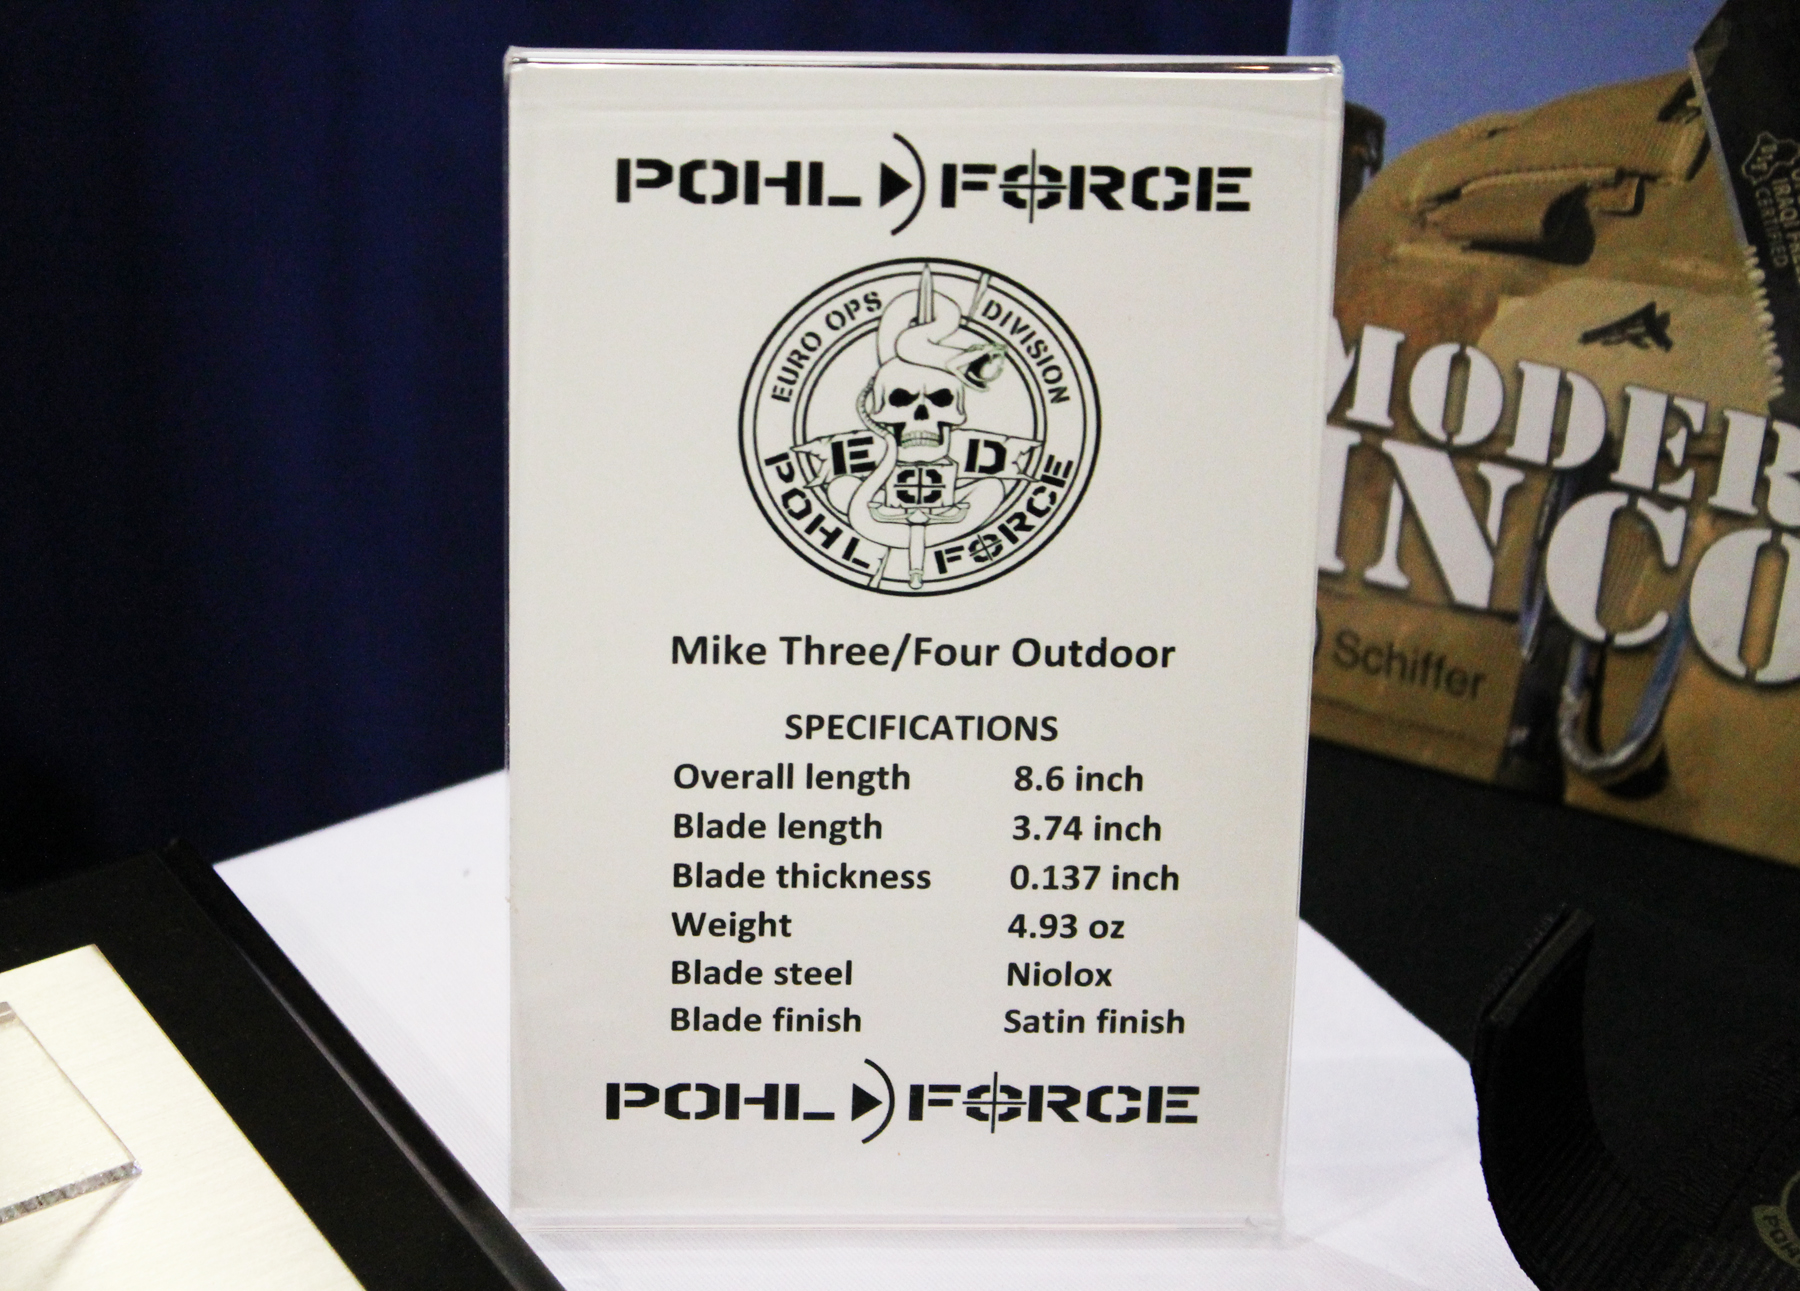 Pohl Force Mike 3 and 4 Outdoors